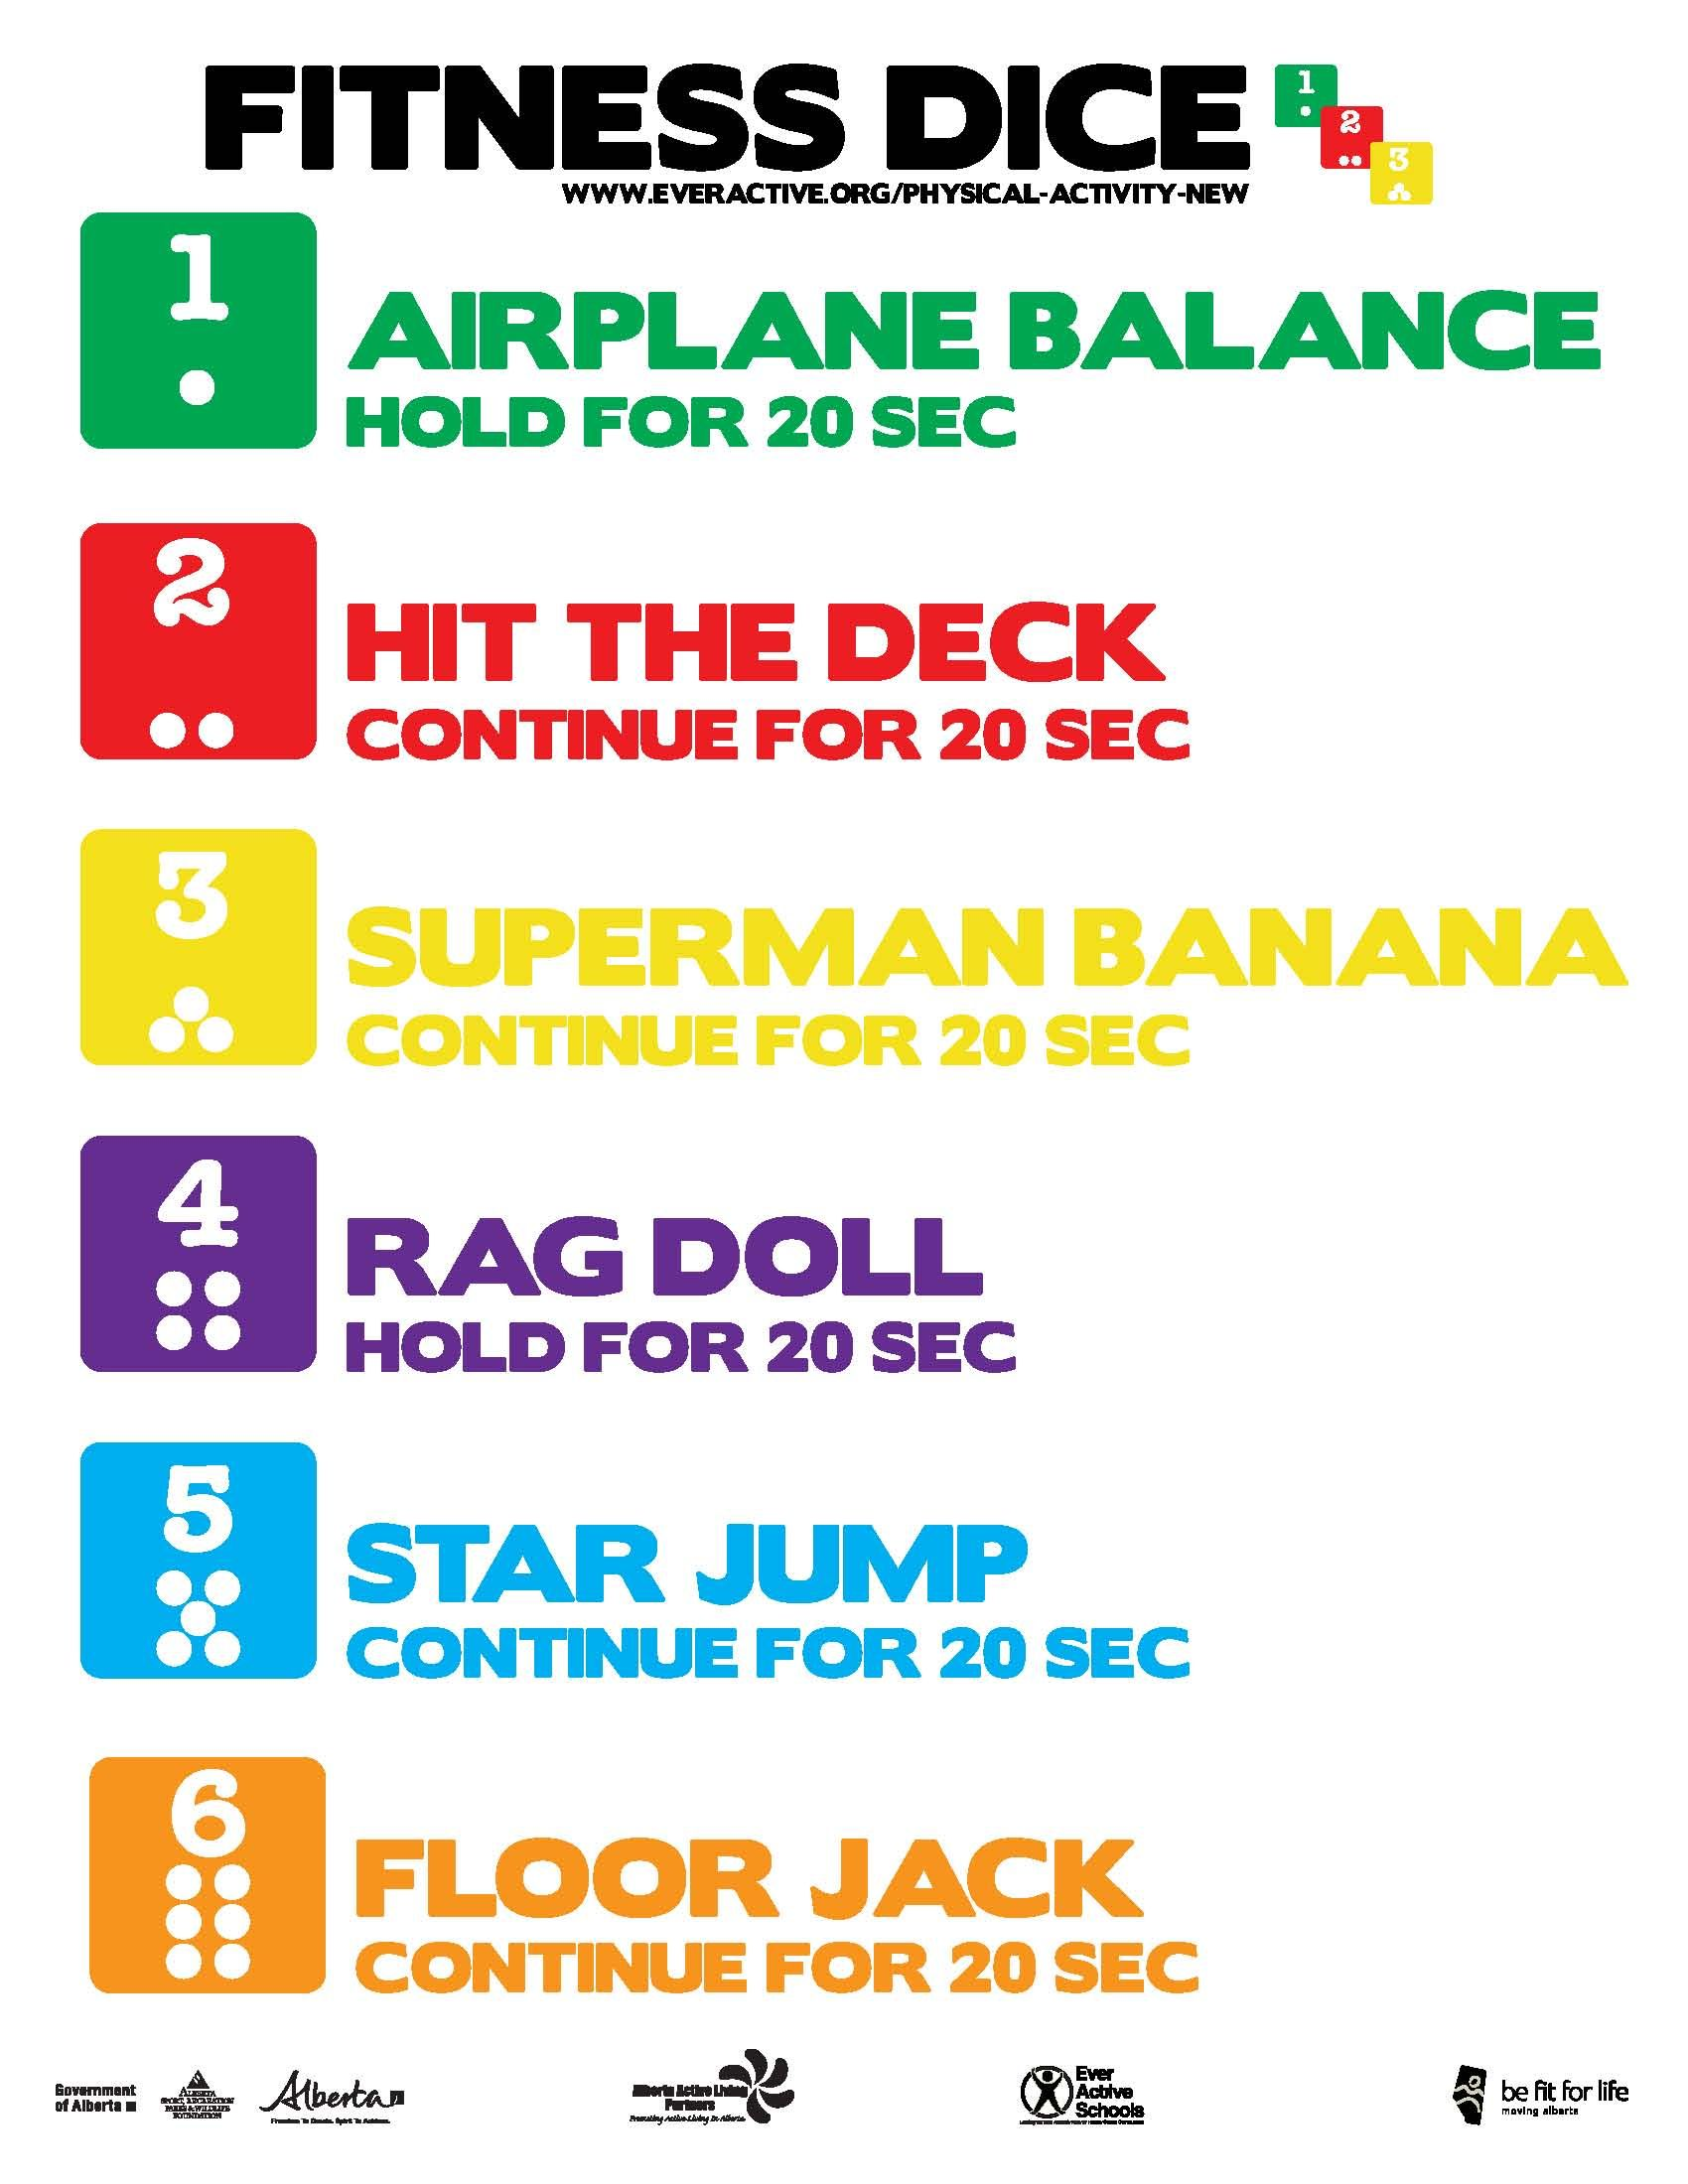 Fitness Dice Activity This Fitness Dice Poster Can Be Used As A Physical Activity It Focuses